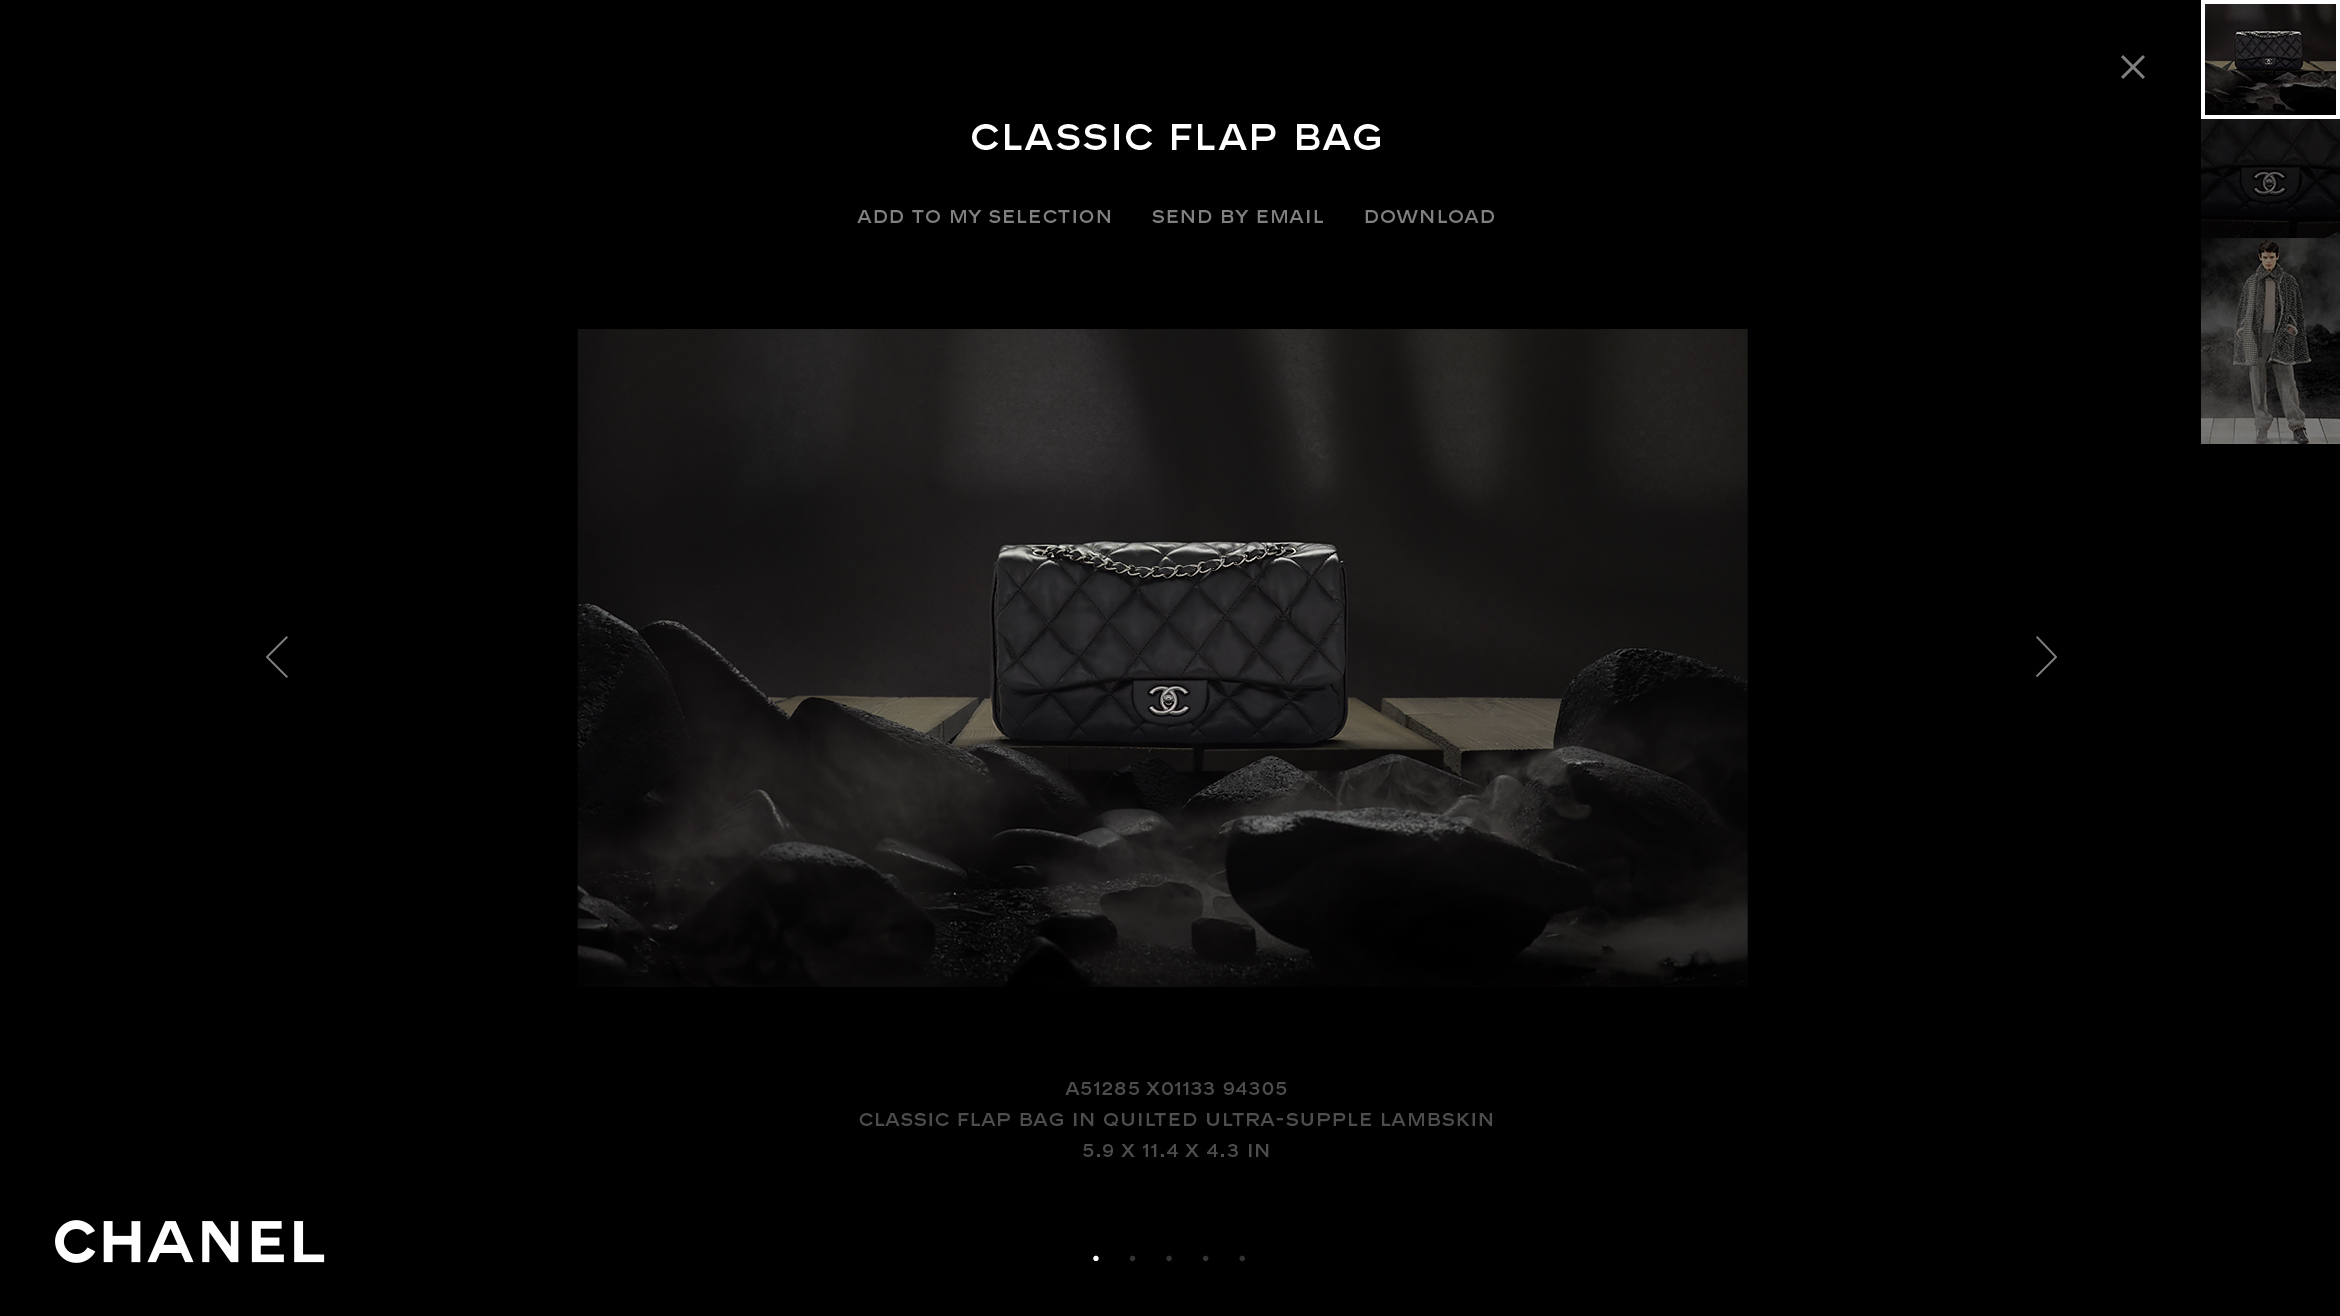 Chanel_Fashion_Product_Handbag_3